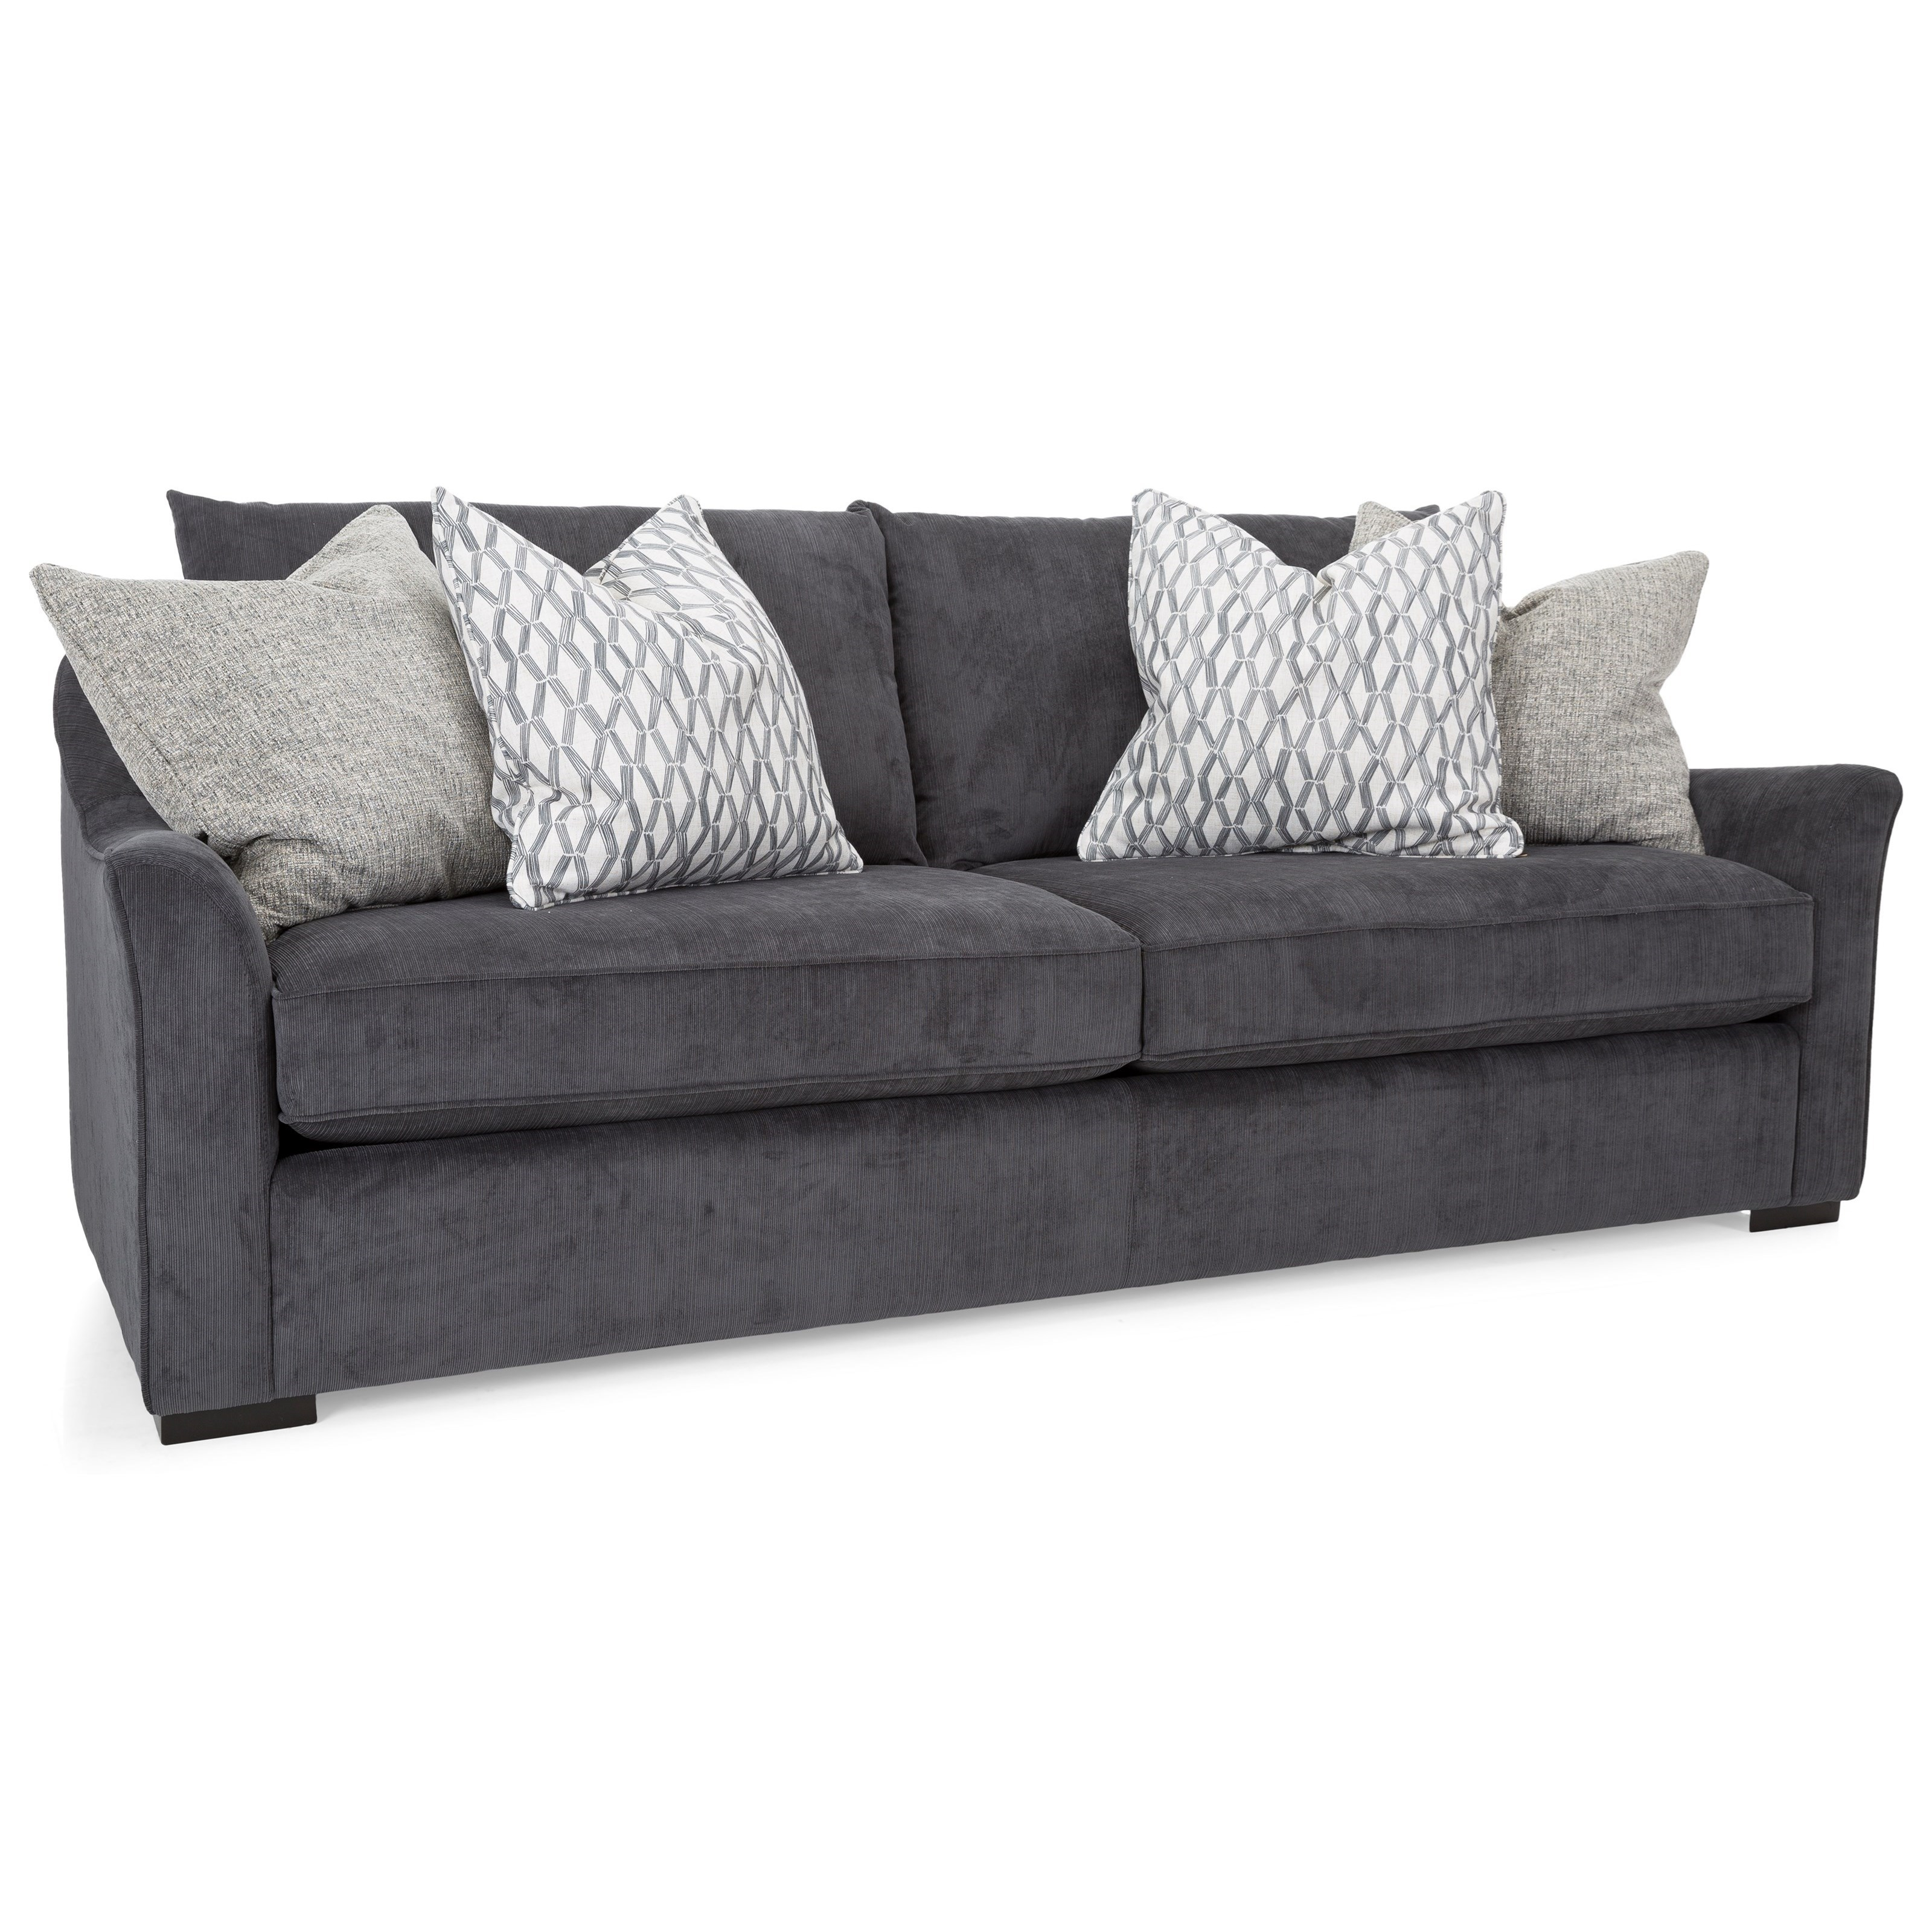 Hazel Sofa by Taelor Designs at Bennett's Furniture and Mattresses